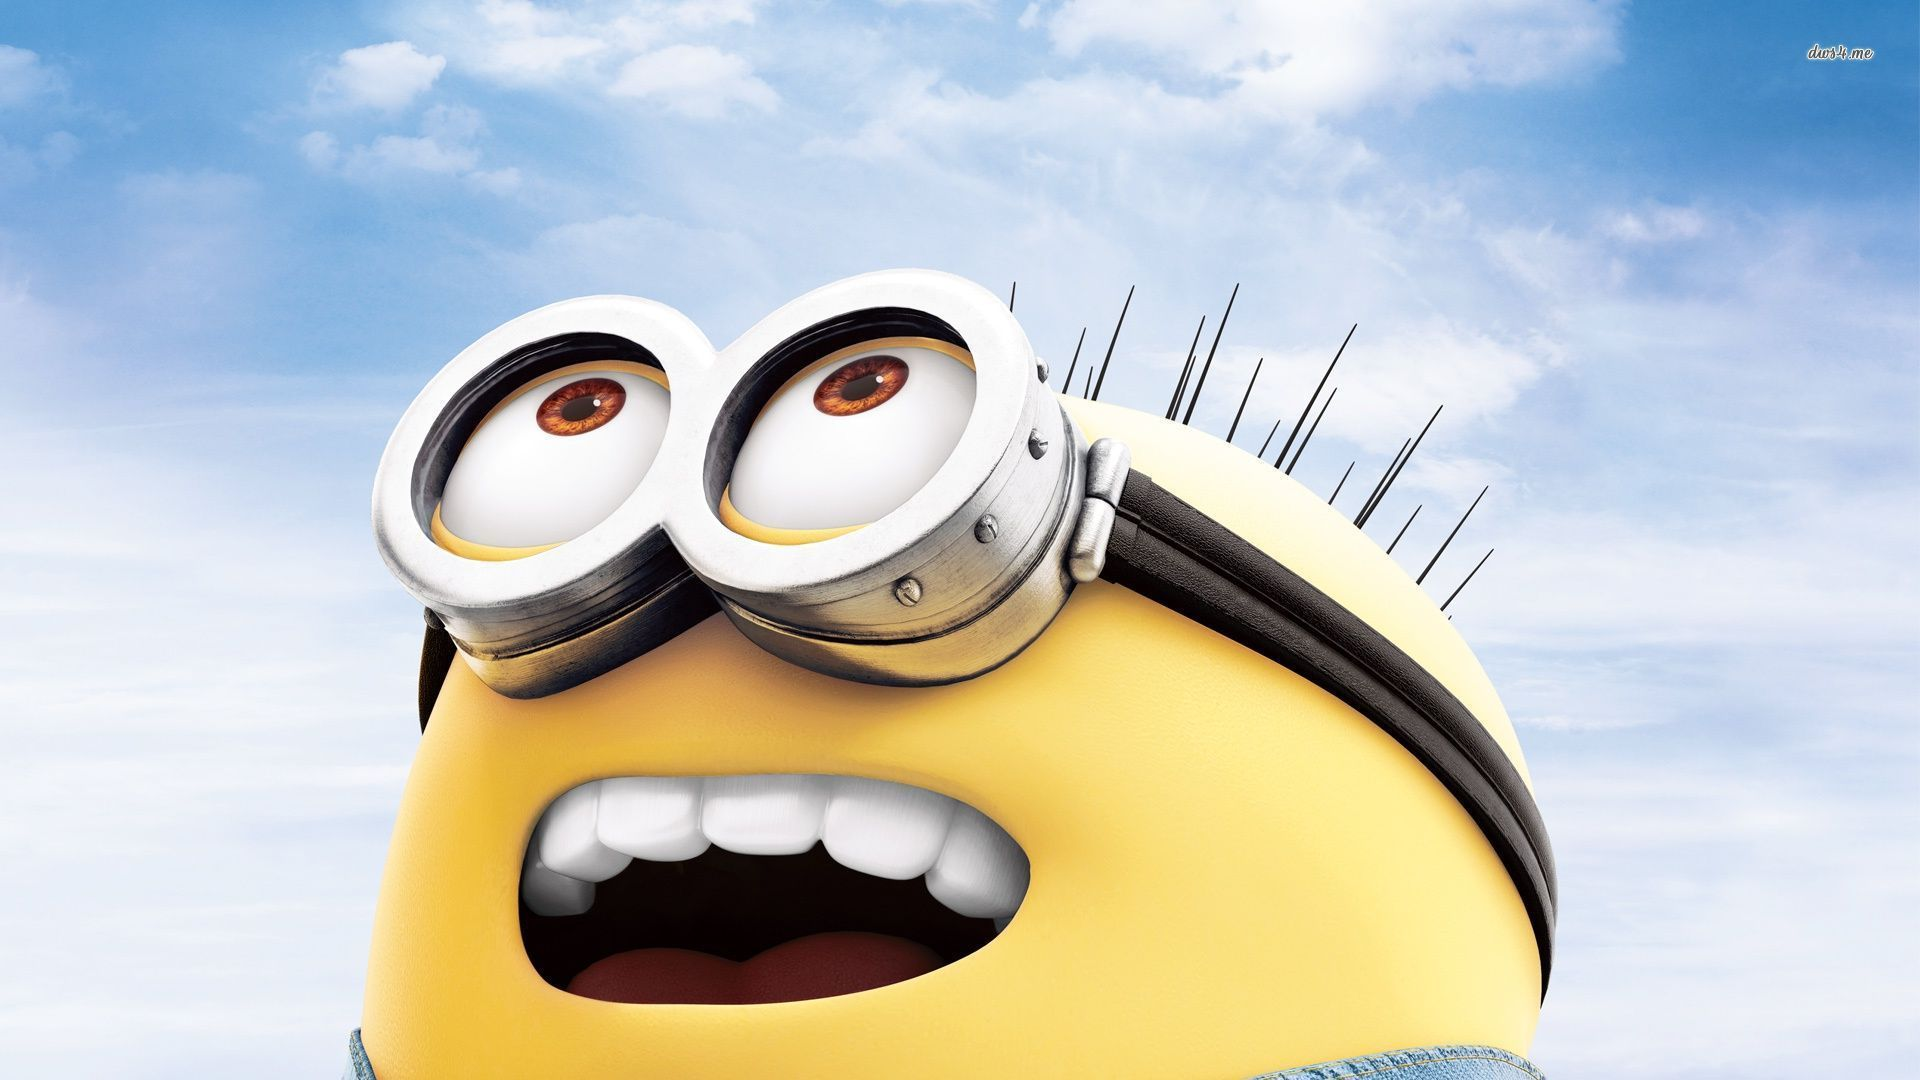 Funny Minion Wallpaper Hd Image Awesome Funny Minion Wallpaper Hd